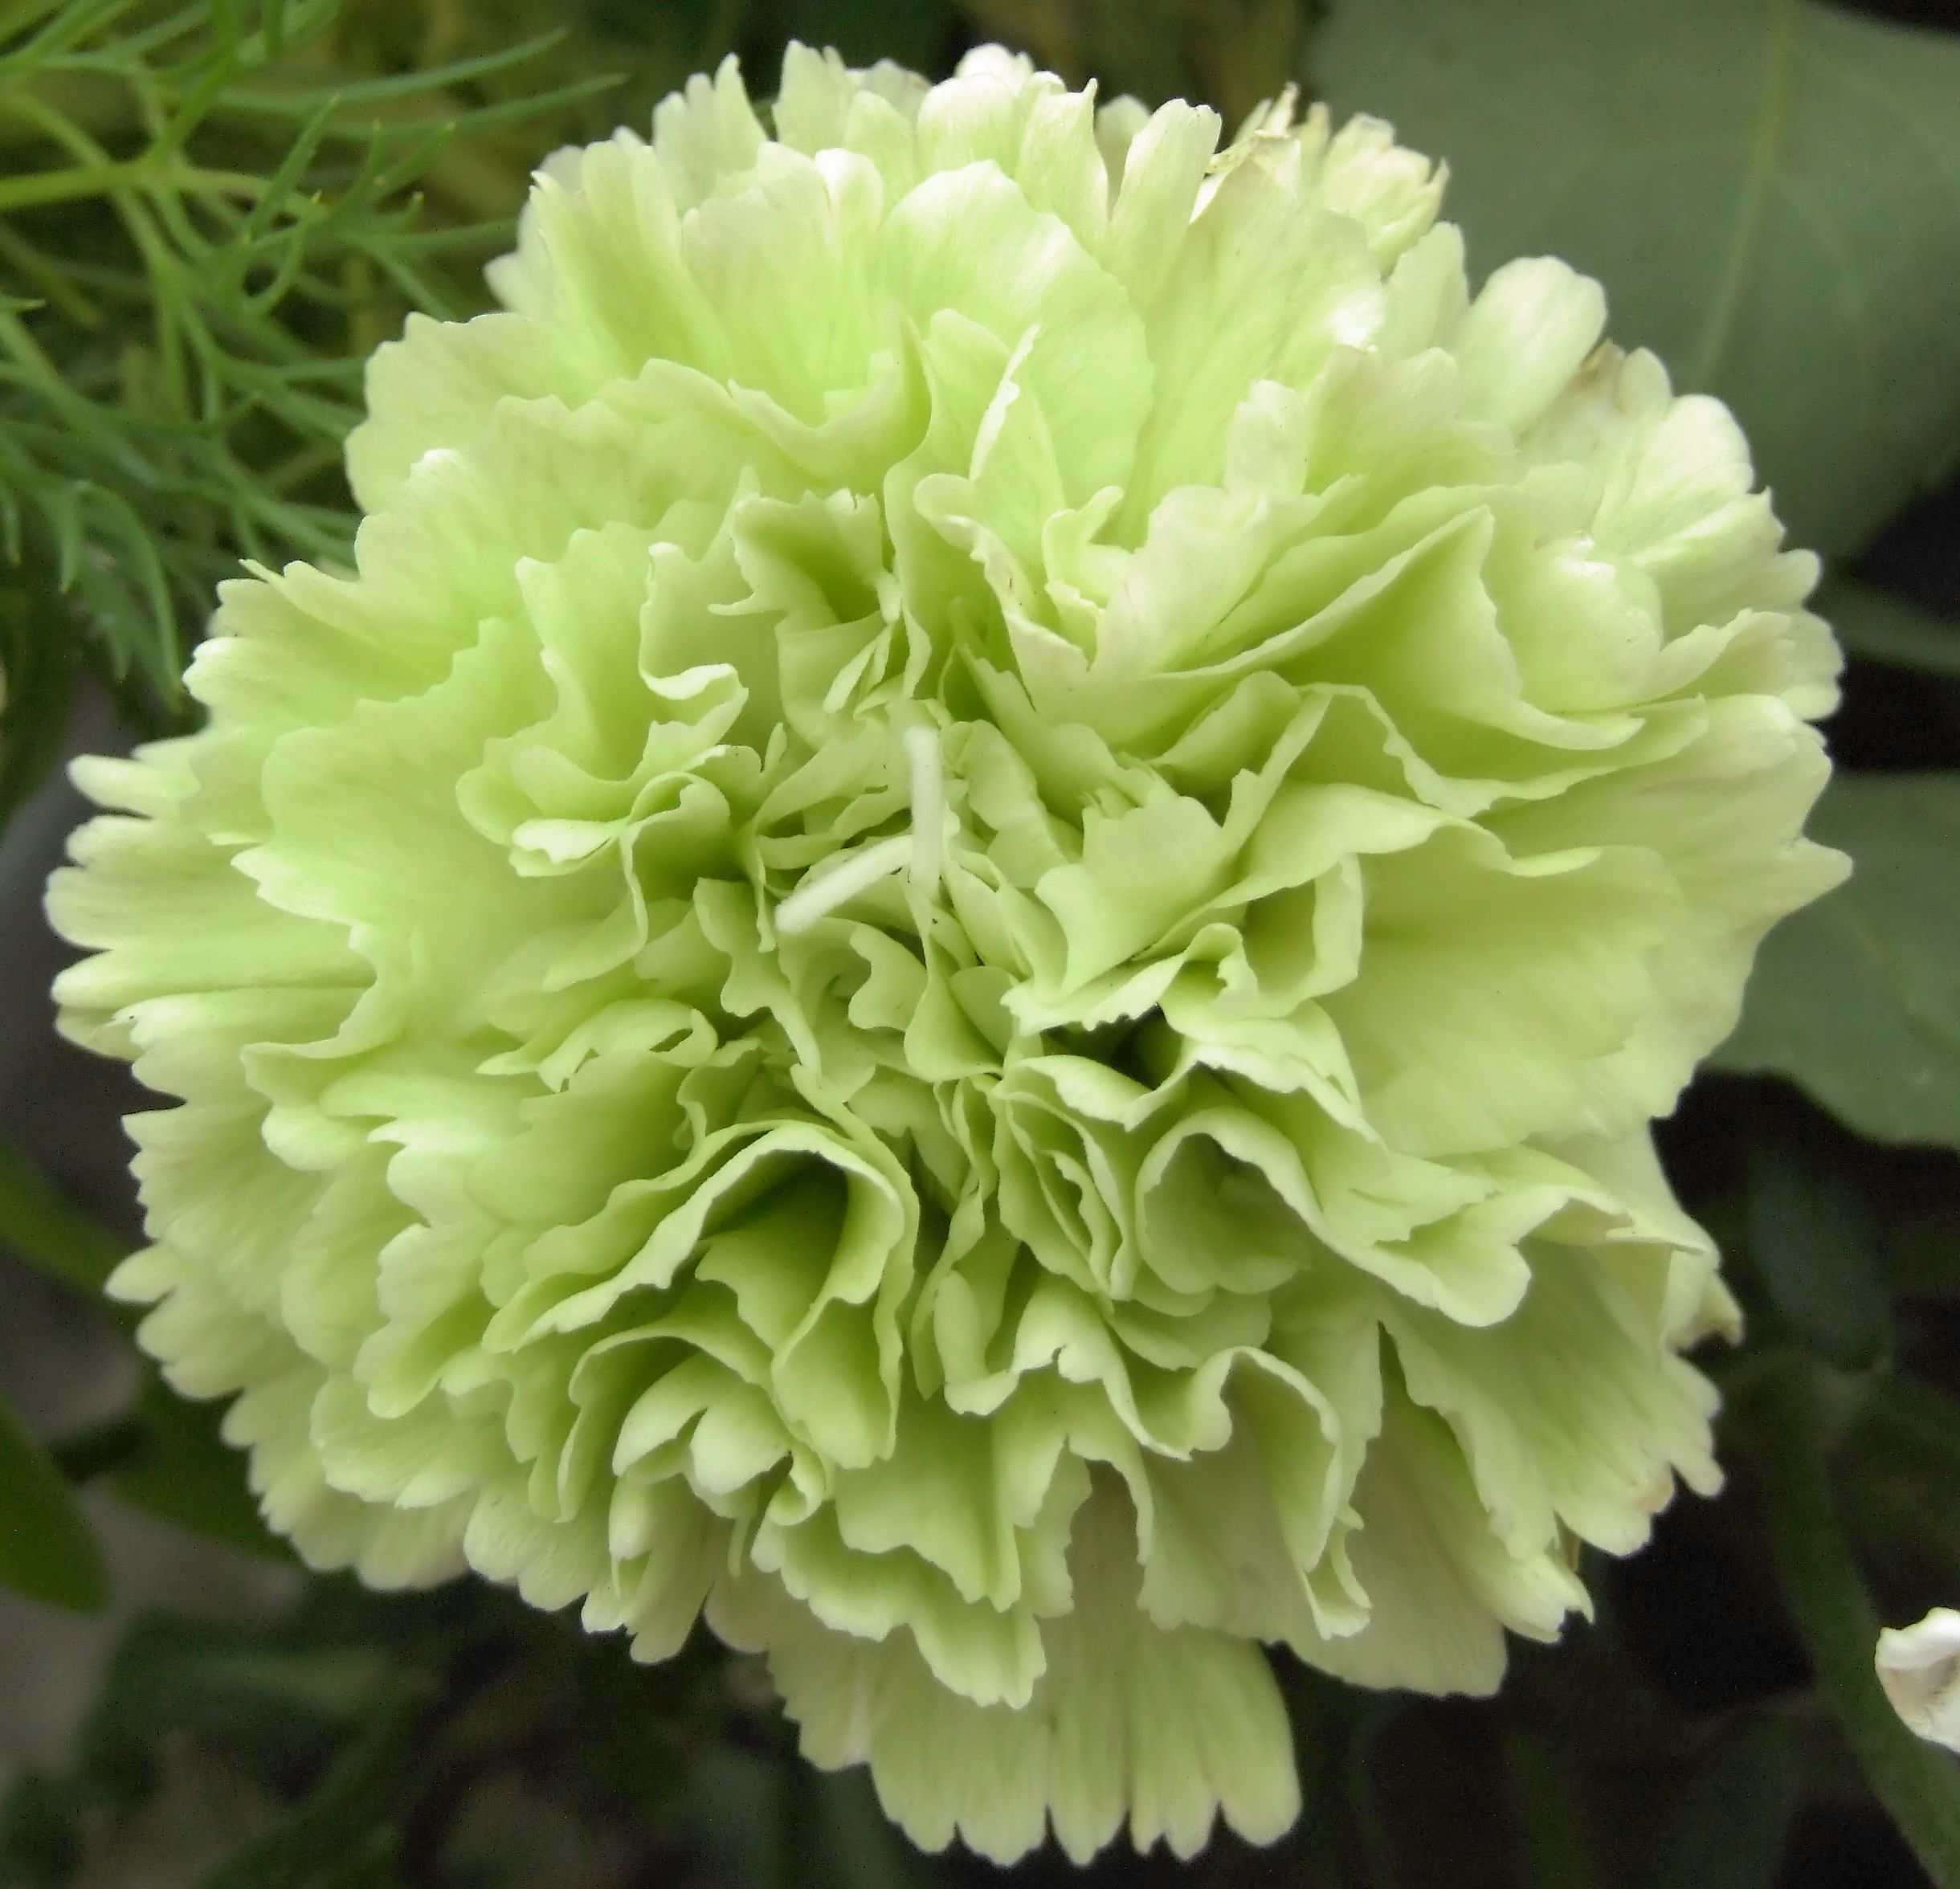 January Birth Month Flower Carnation Or Snowdrop Beautiful